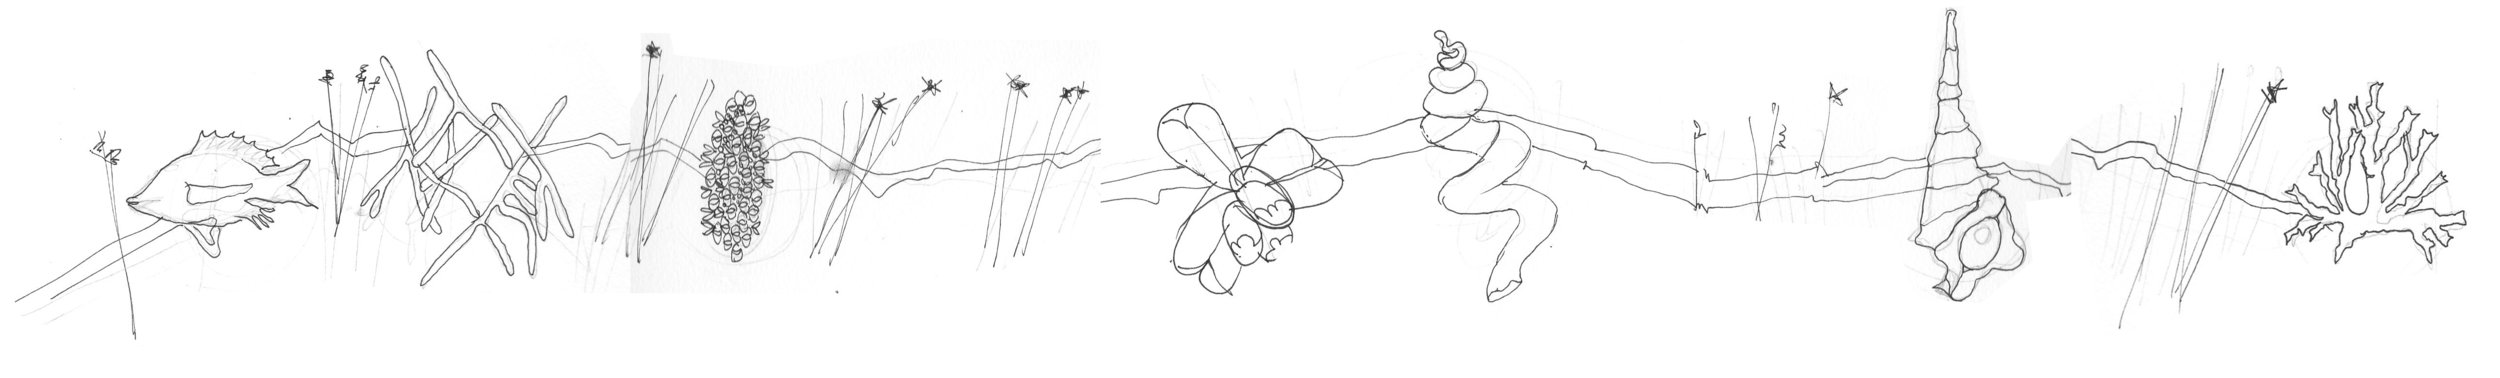 Initial concept sketch of elements to be developed as sculpture and mounted on wall.